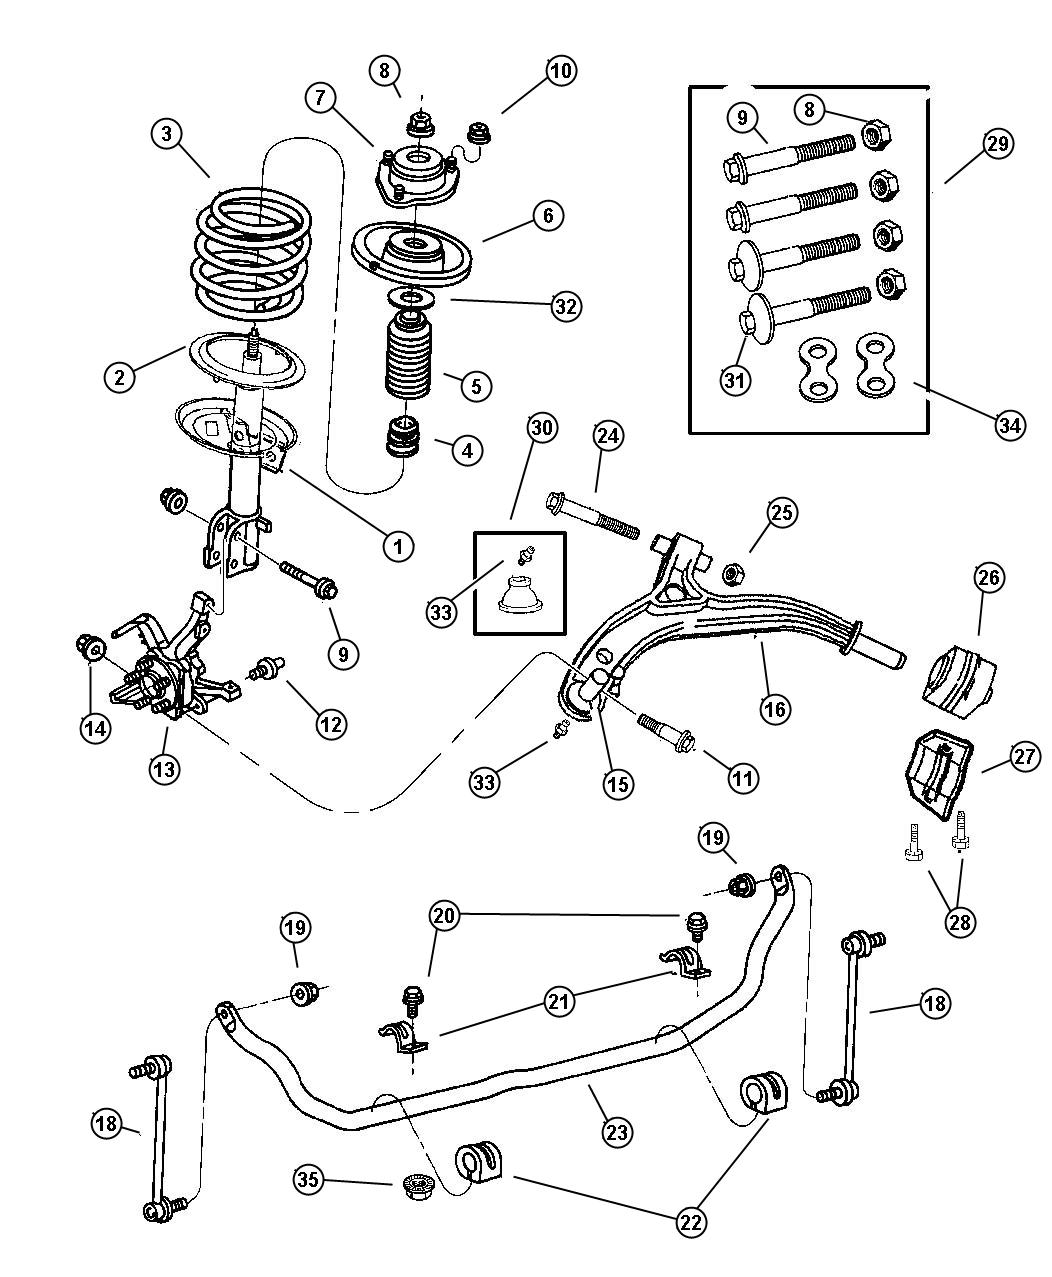 Chrysler Voyager Fuse Box Diagram